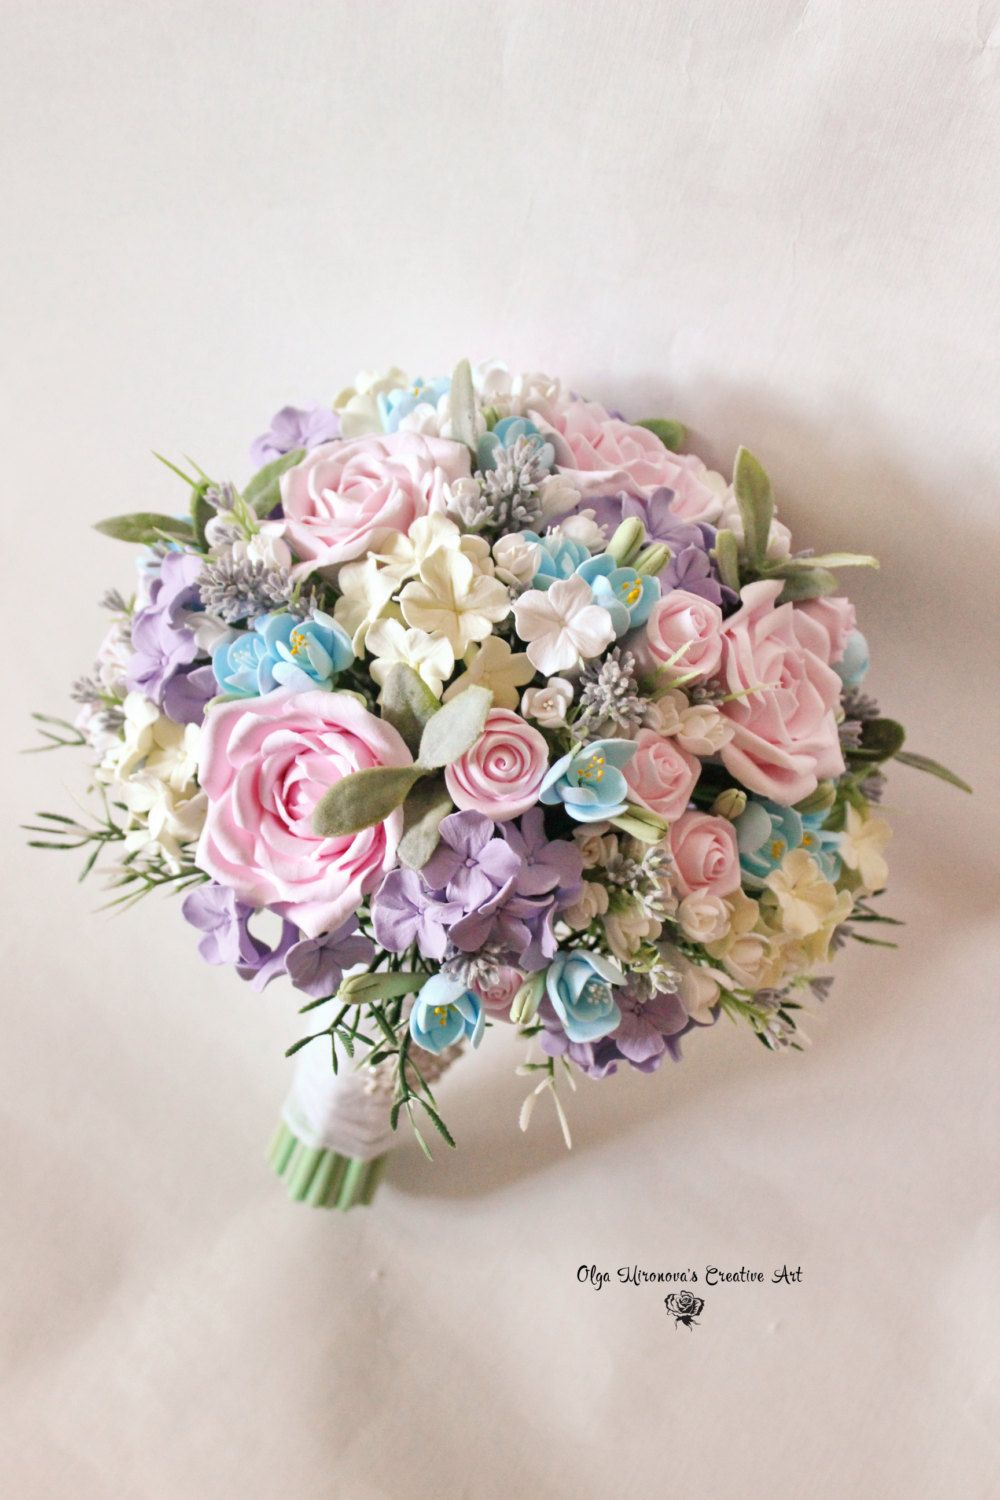 Pink roses lavender wedding bouquet bridal shabby chic bouquet clay pink roses lavender wedding bouquet bridal shabby chic bouquet clay flowers bouquet romantic keepsake bouquet pink blue ivory bouquet izmirmasajfo Images